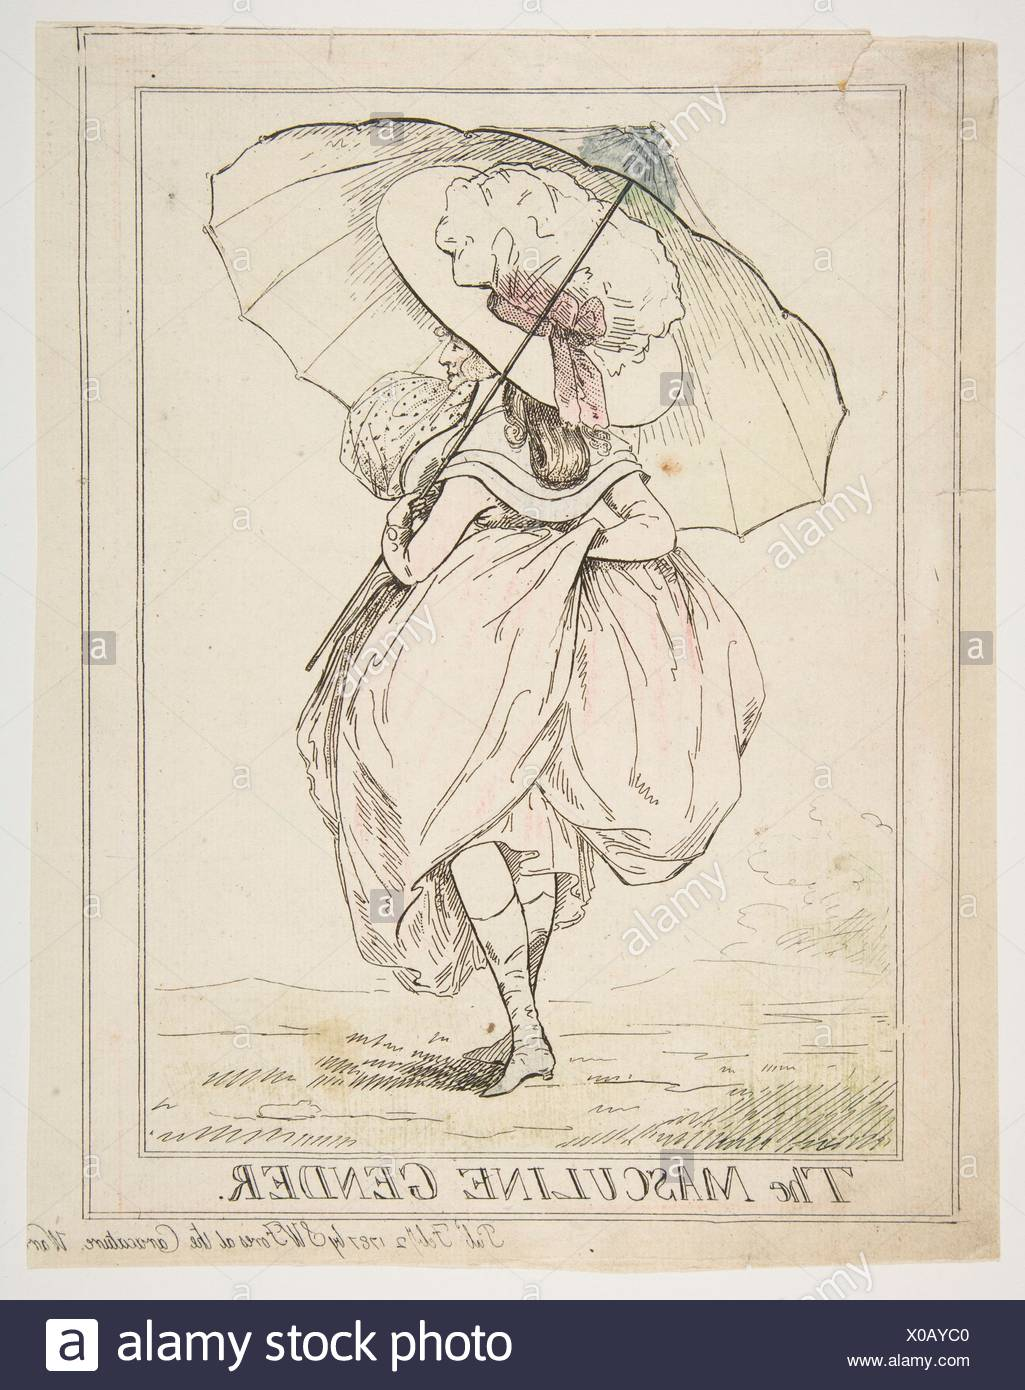 The Masculine Gender. Artist: Attributed to Henry Kingsbury (British, active ca. 1775-98); Publisher: Samuel William Fores (British, 1761-1838); - Stock Image